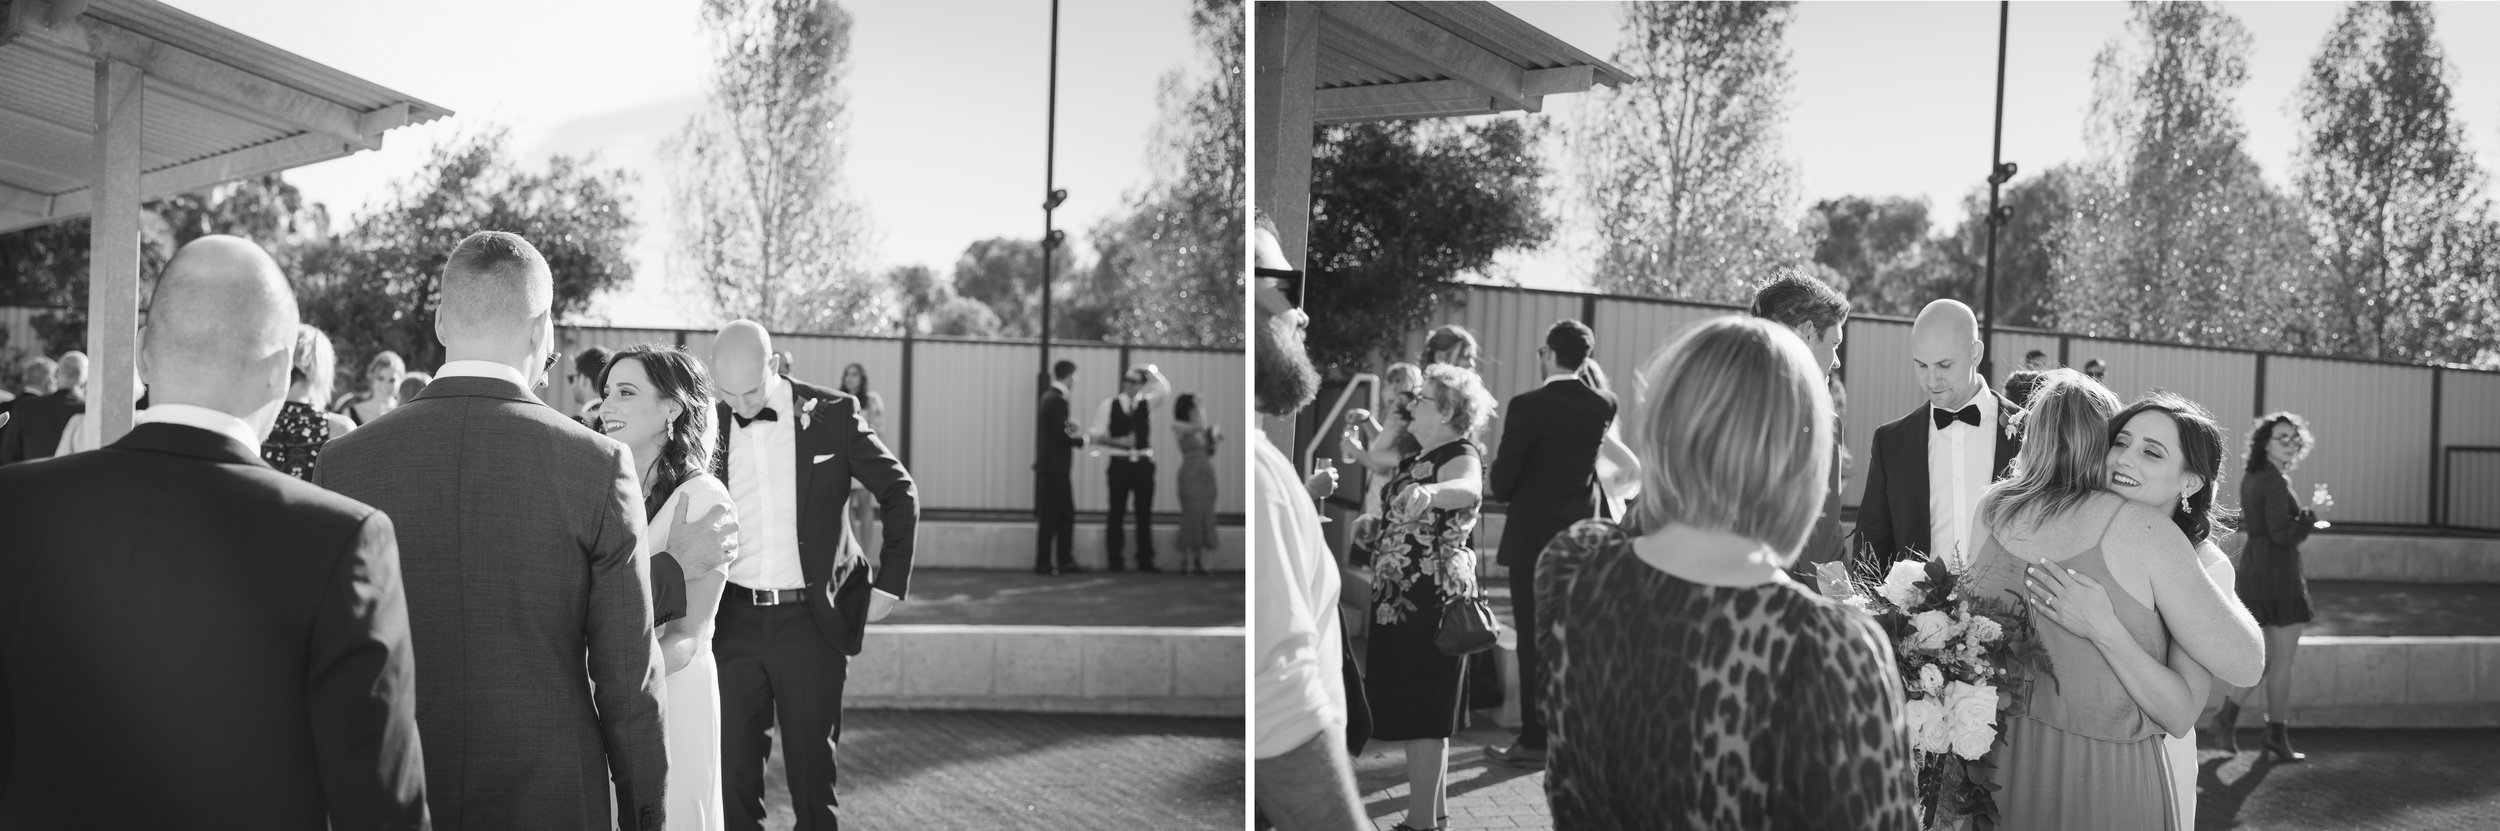 Angie Roe Photography Avon Valley Wheatbelt Country Wedding (21and22).jpg